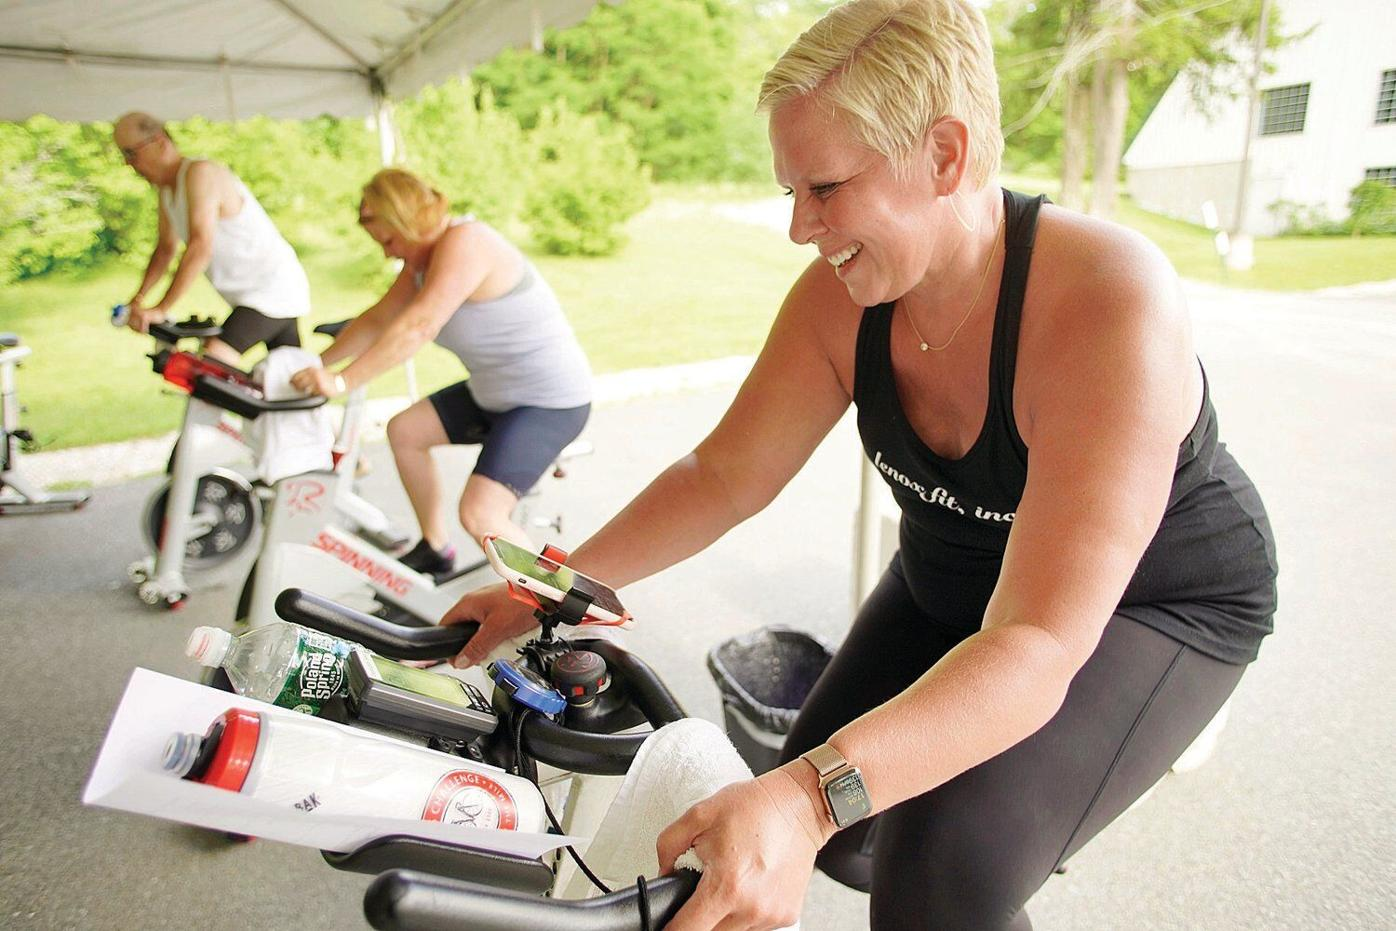 Fitness industry continues to sweat the details of pandemic restrictions, reopenings